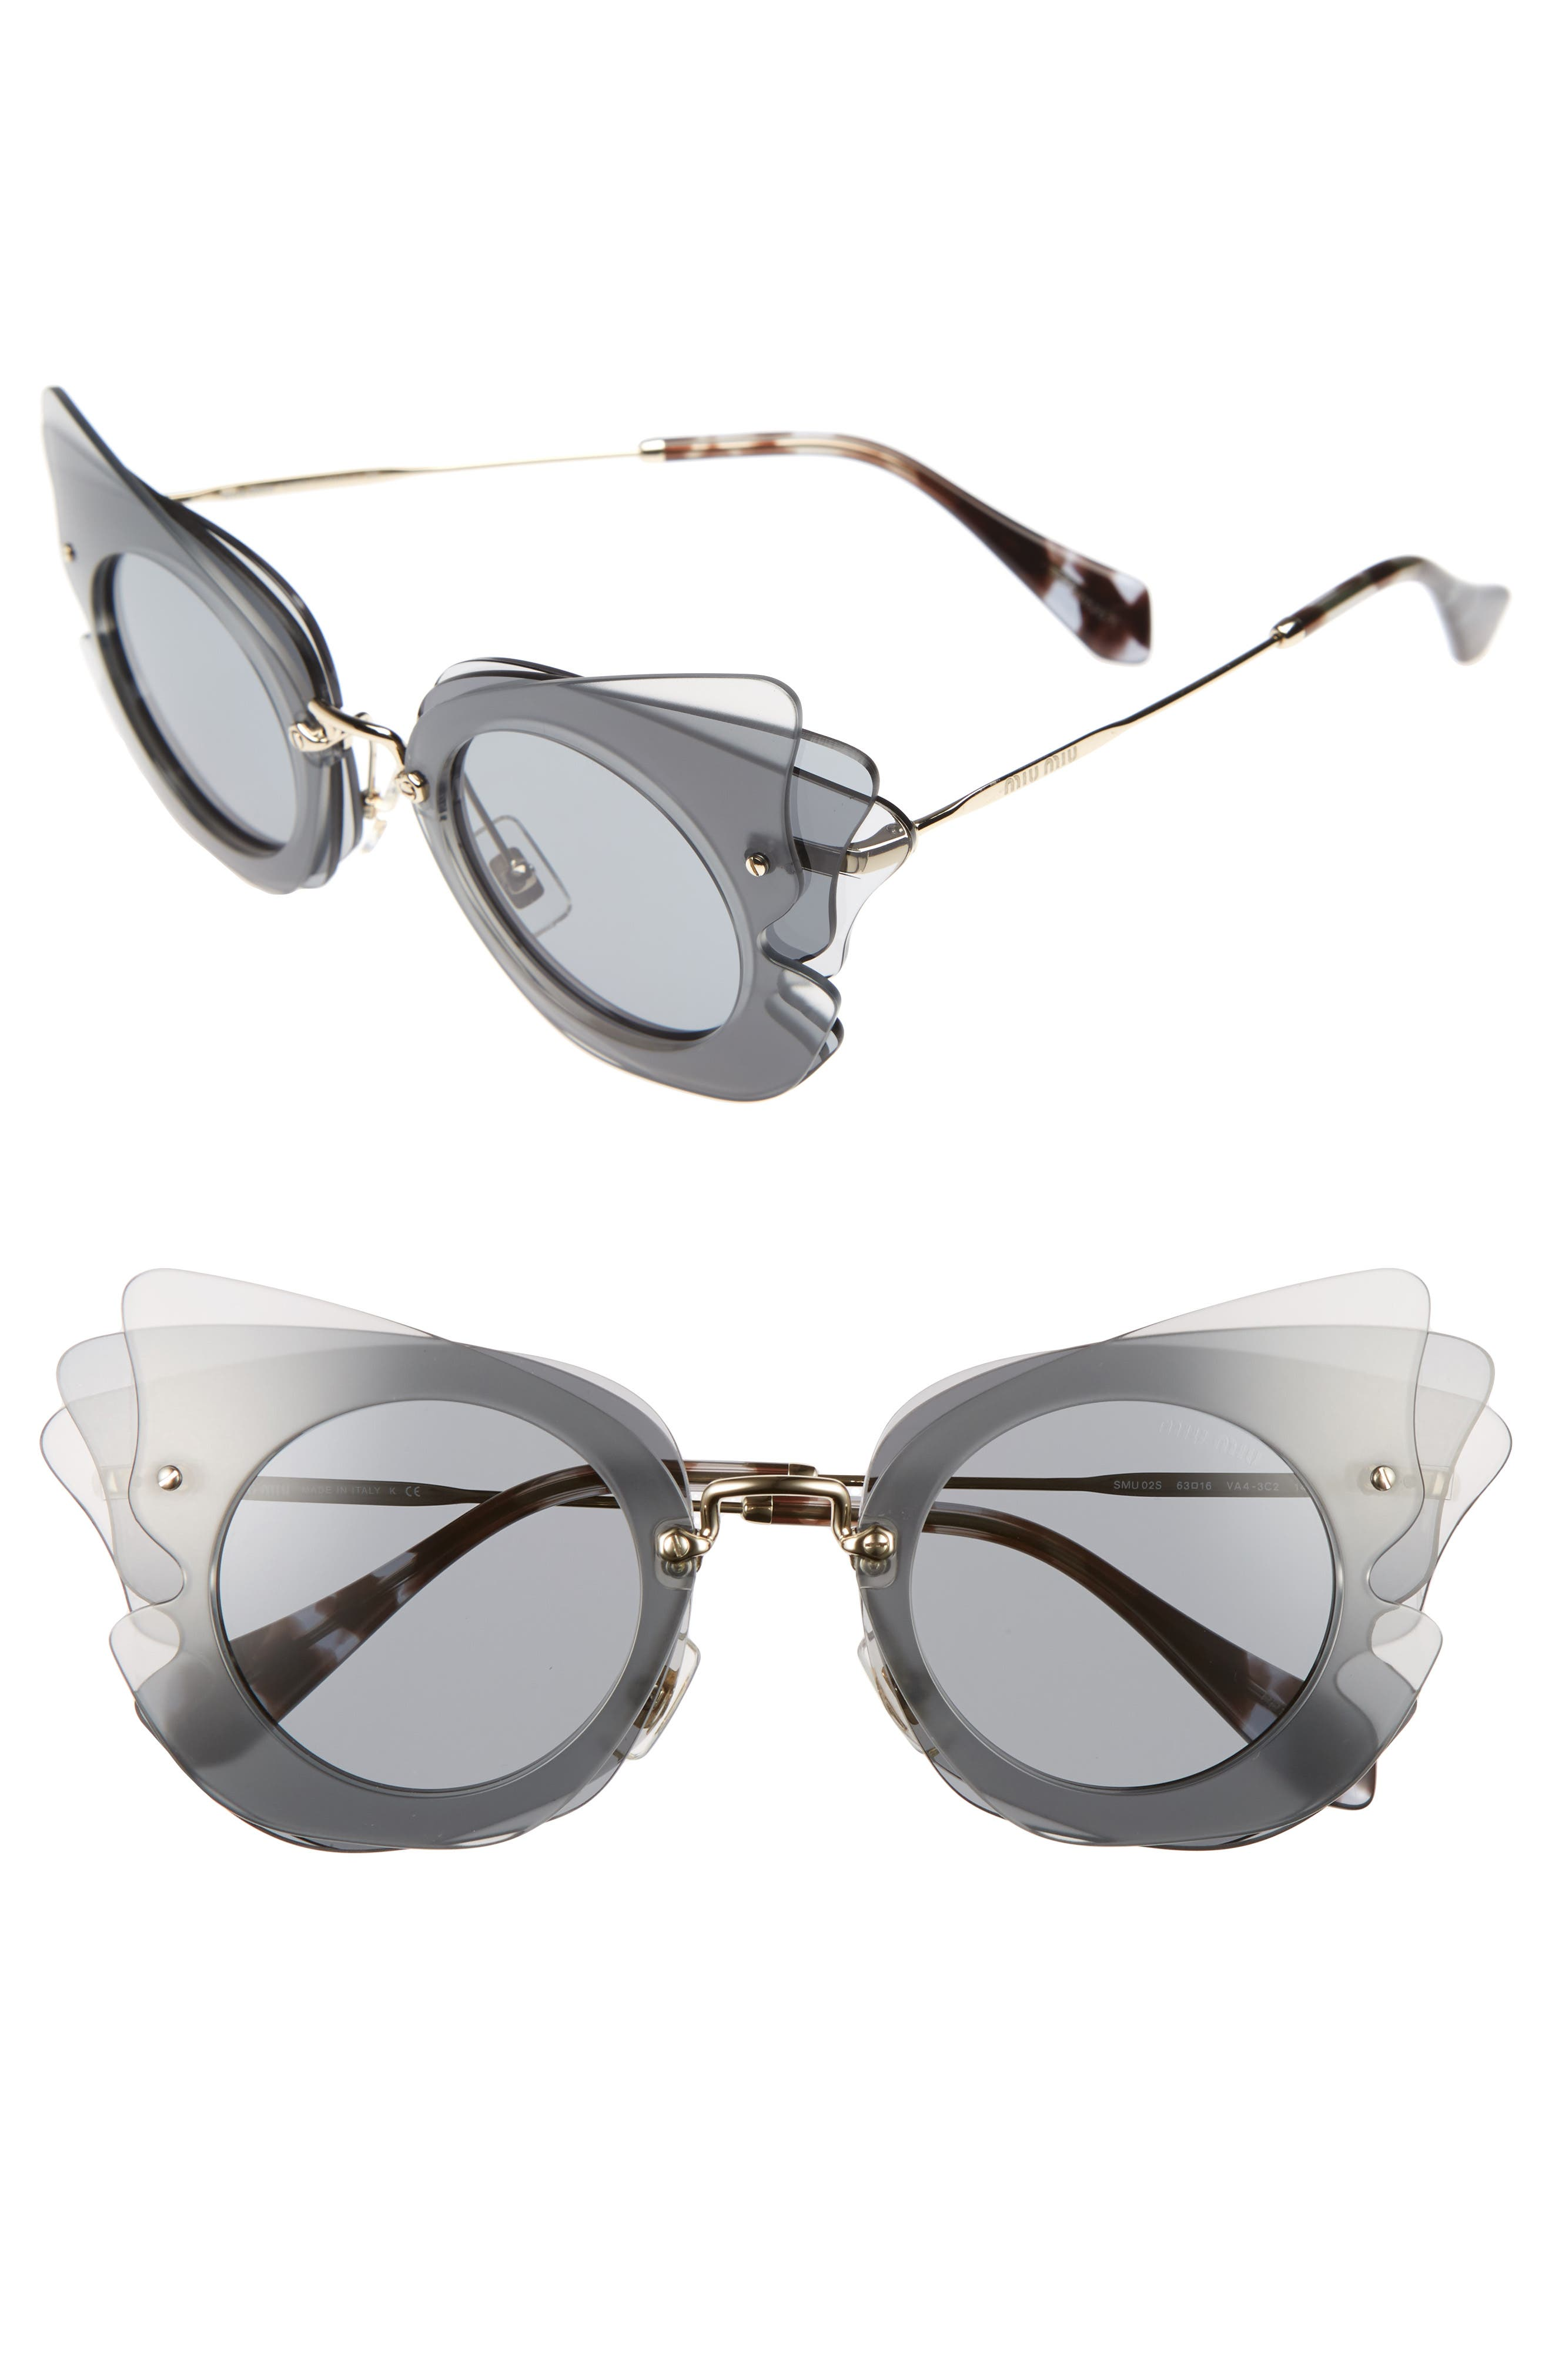 63mm Layered Butterfly Sunglasses,                         Main,                         color, 020